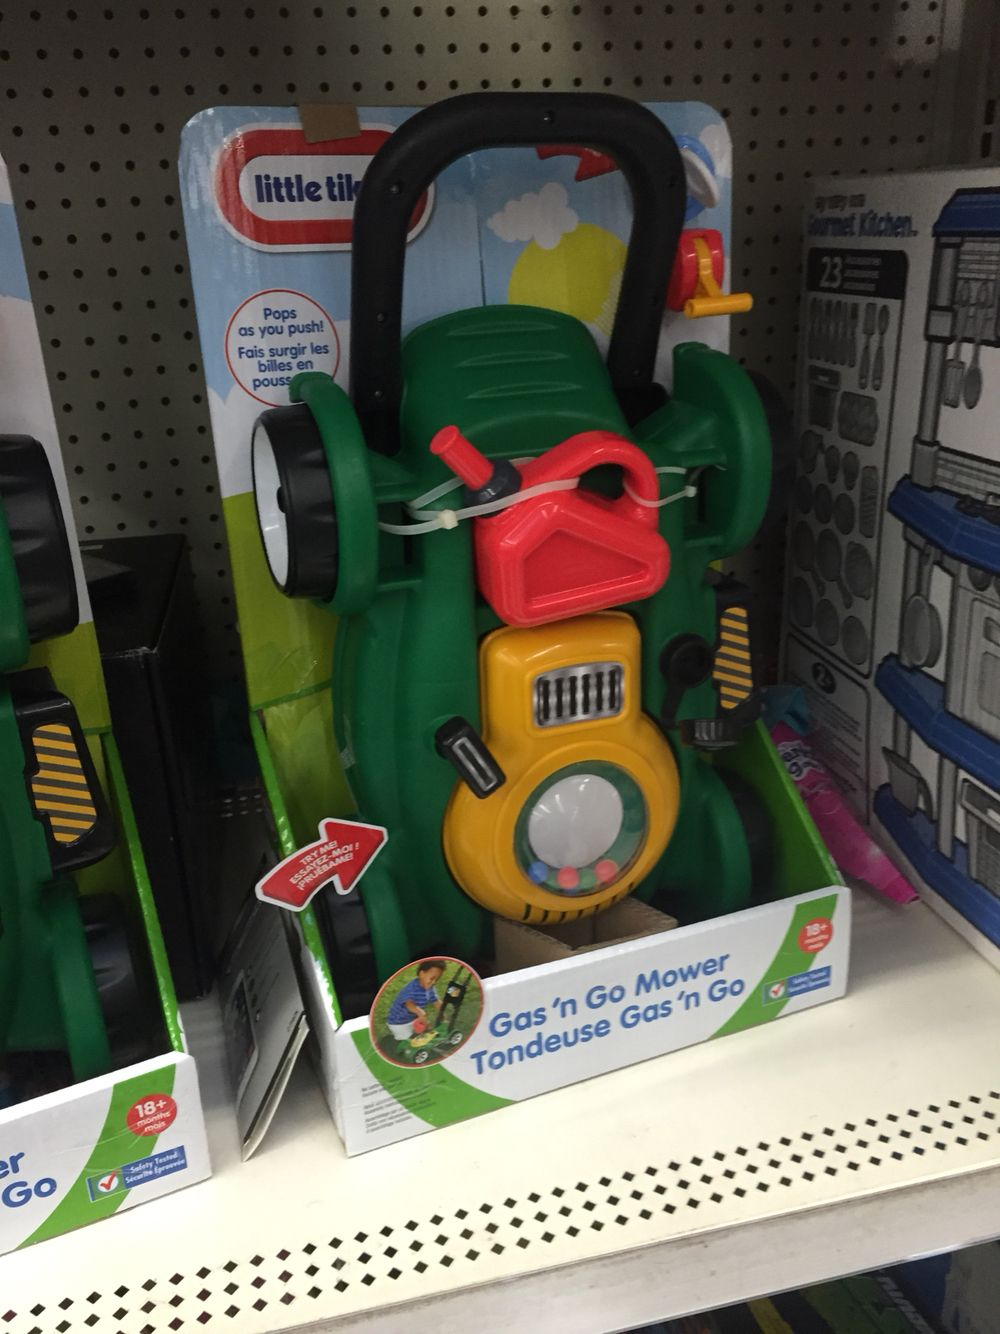 Toy lawn mower at Walmart near the electronics on the back